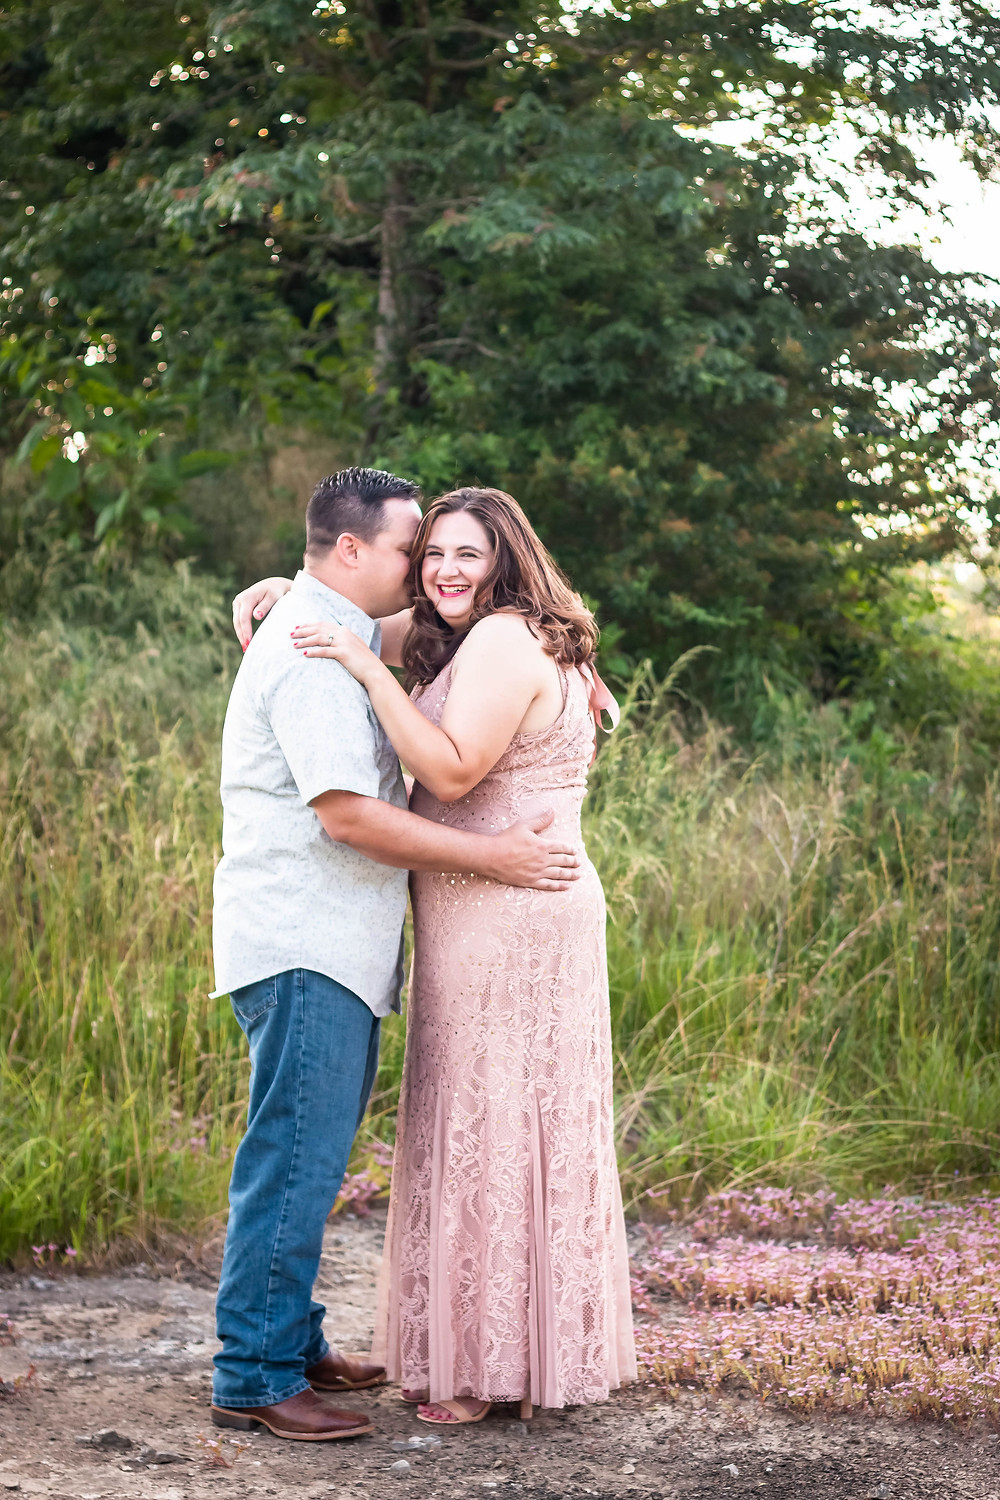 Cute couple laughing in a field in Lewisburg, Tennessee